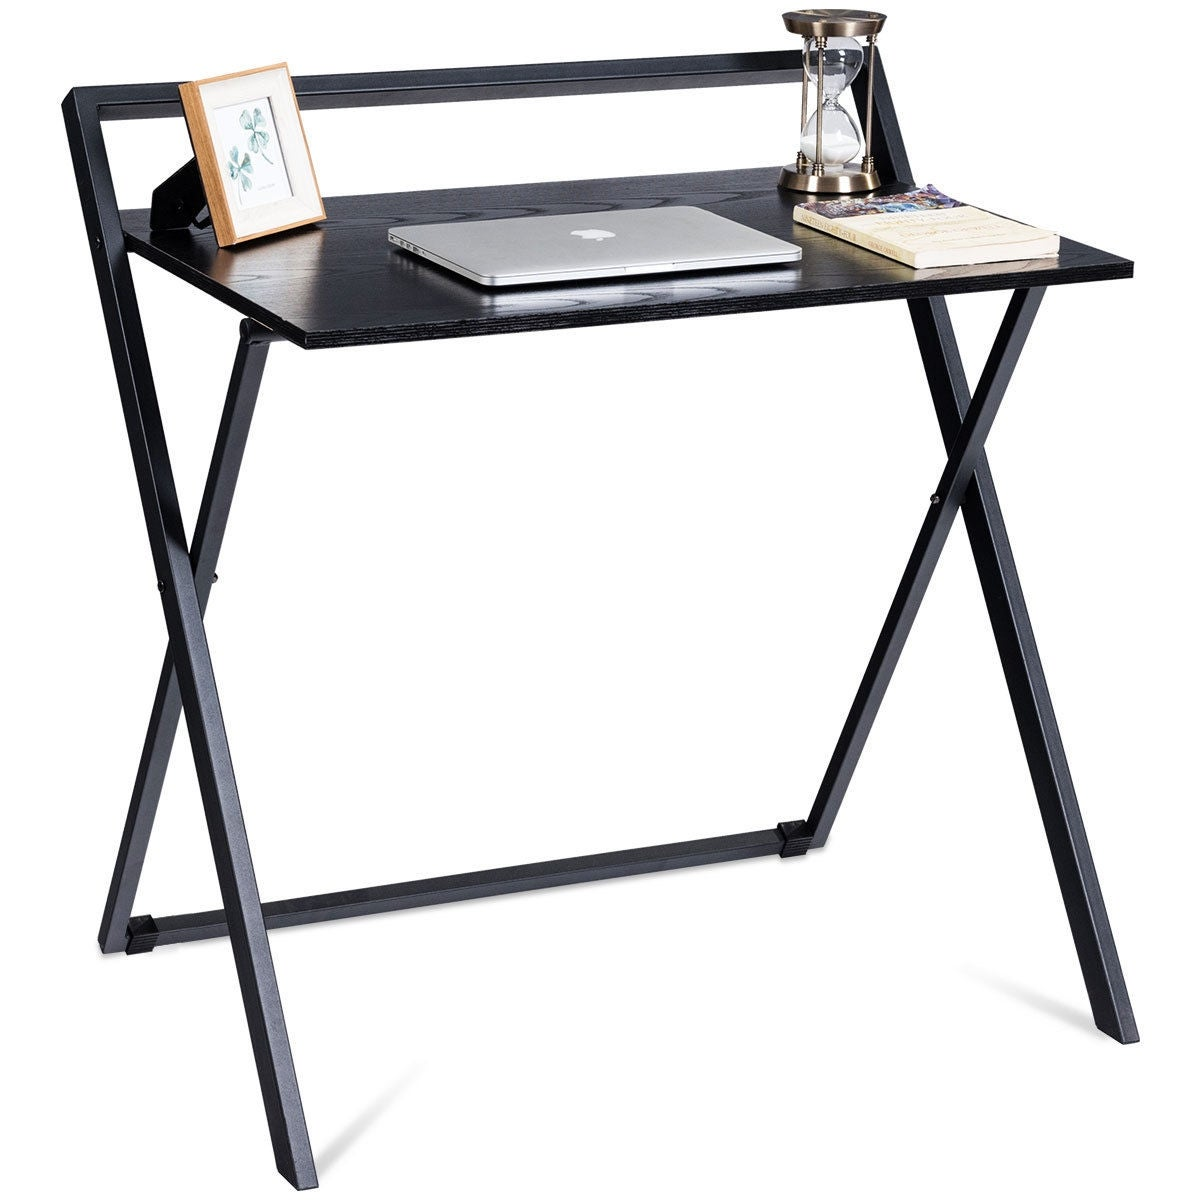 Beau Folding Computer Desk PC Laptop Table Study Workstation Wood Top Metal  Frame New